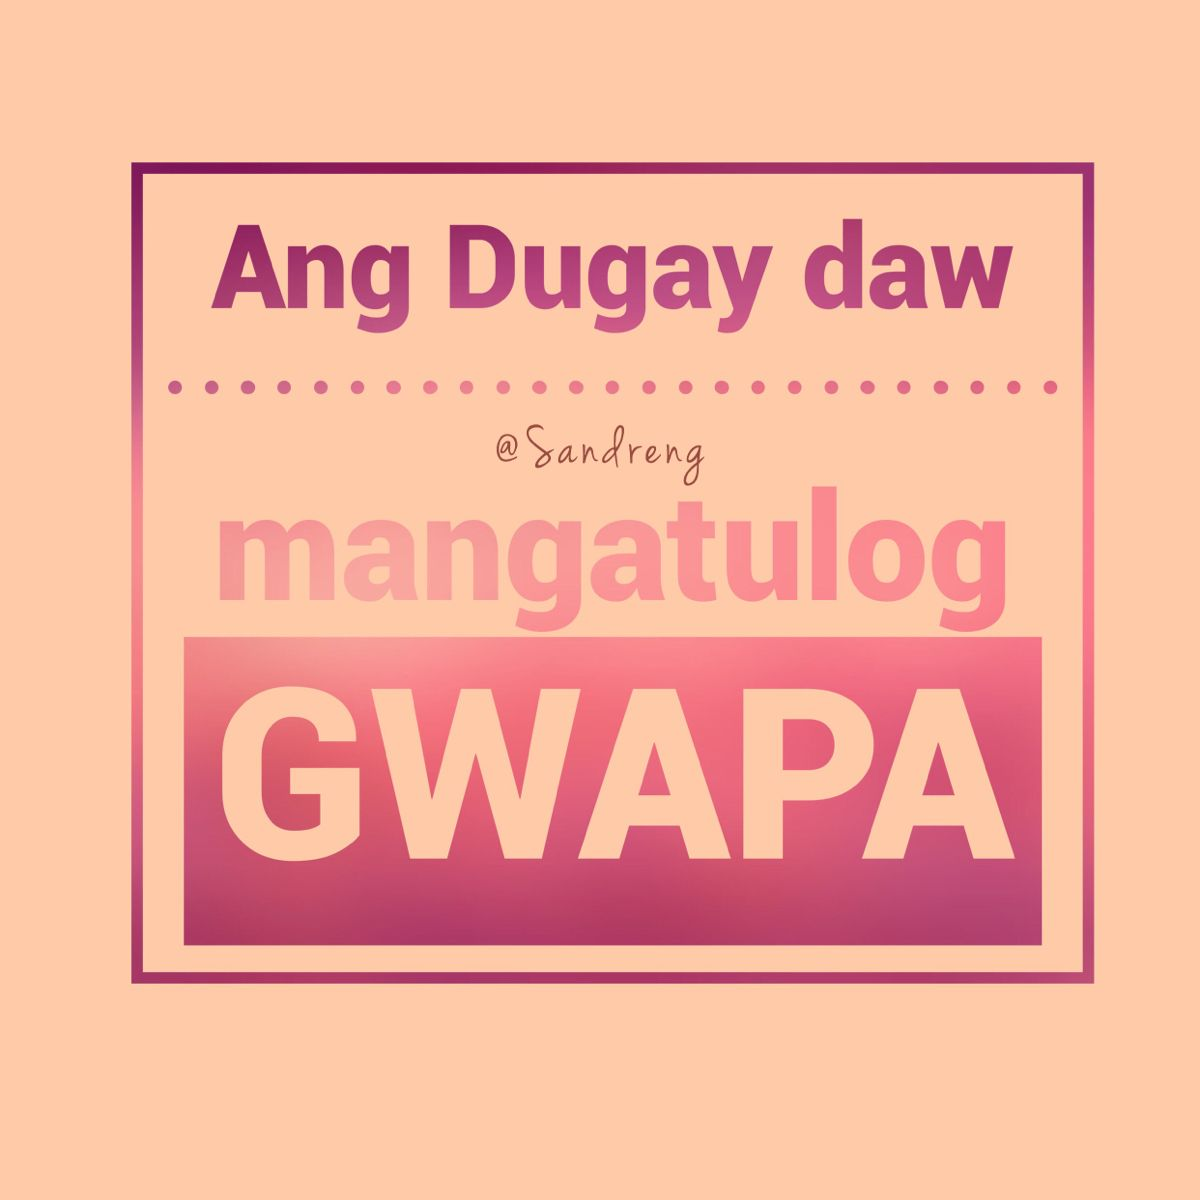 Pin By Lavabeau Qr On Sandreng Quotes Bisaya Quotes Quotes Keep Calm Artwork